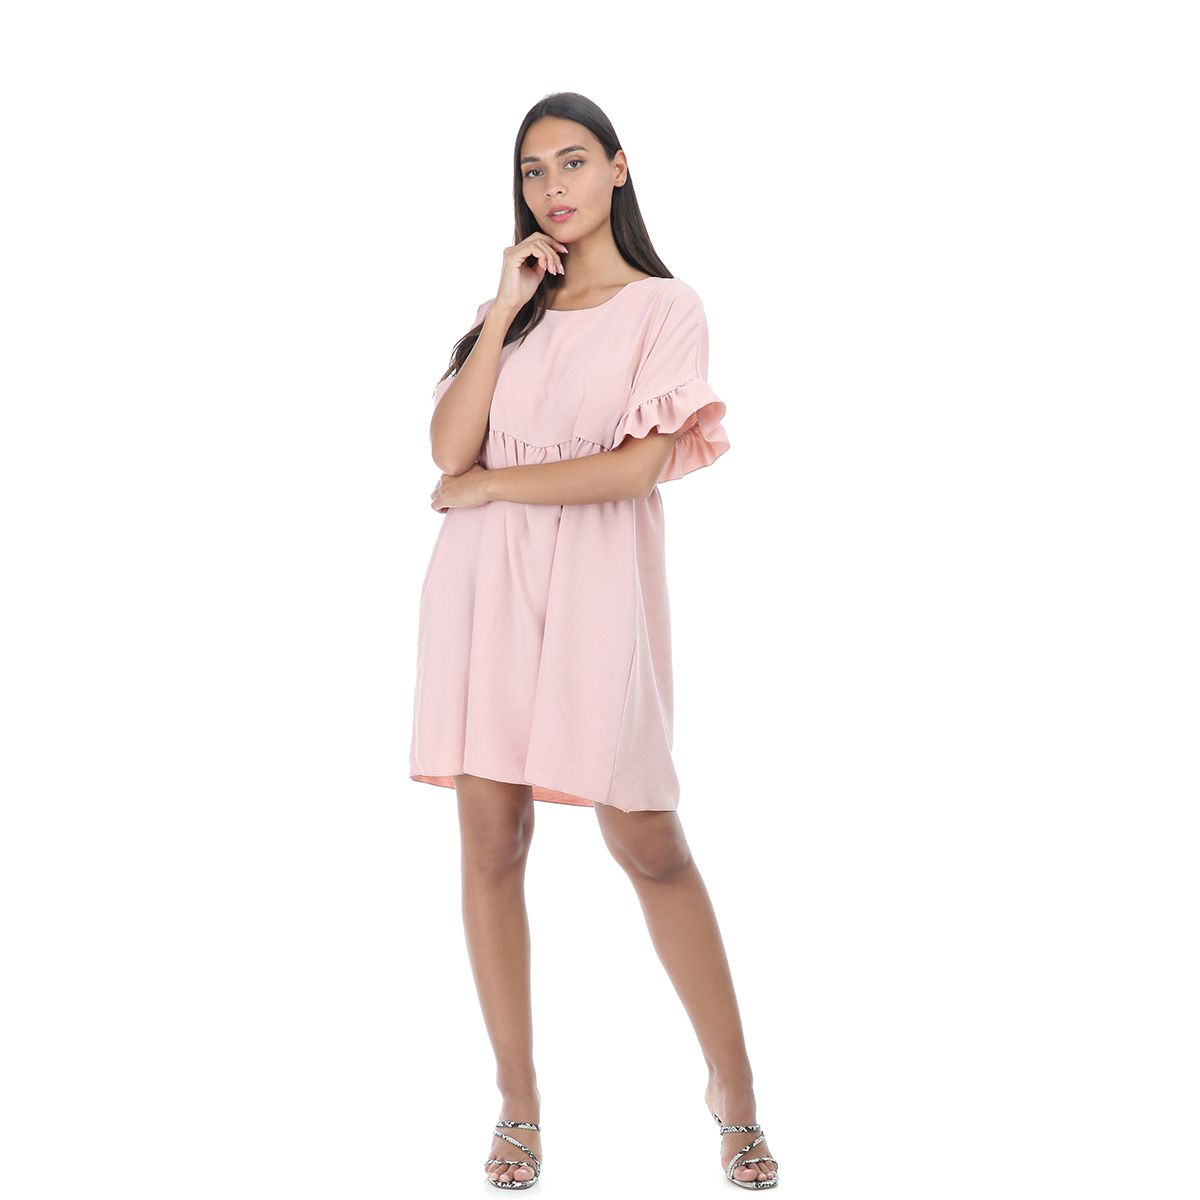 Robe rose style babydoll à manches courtes